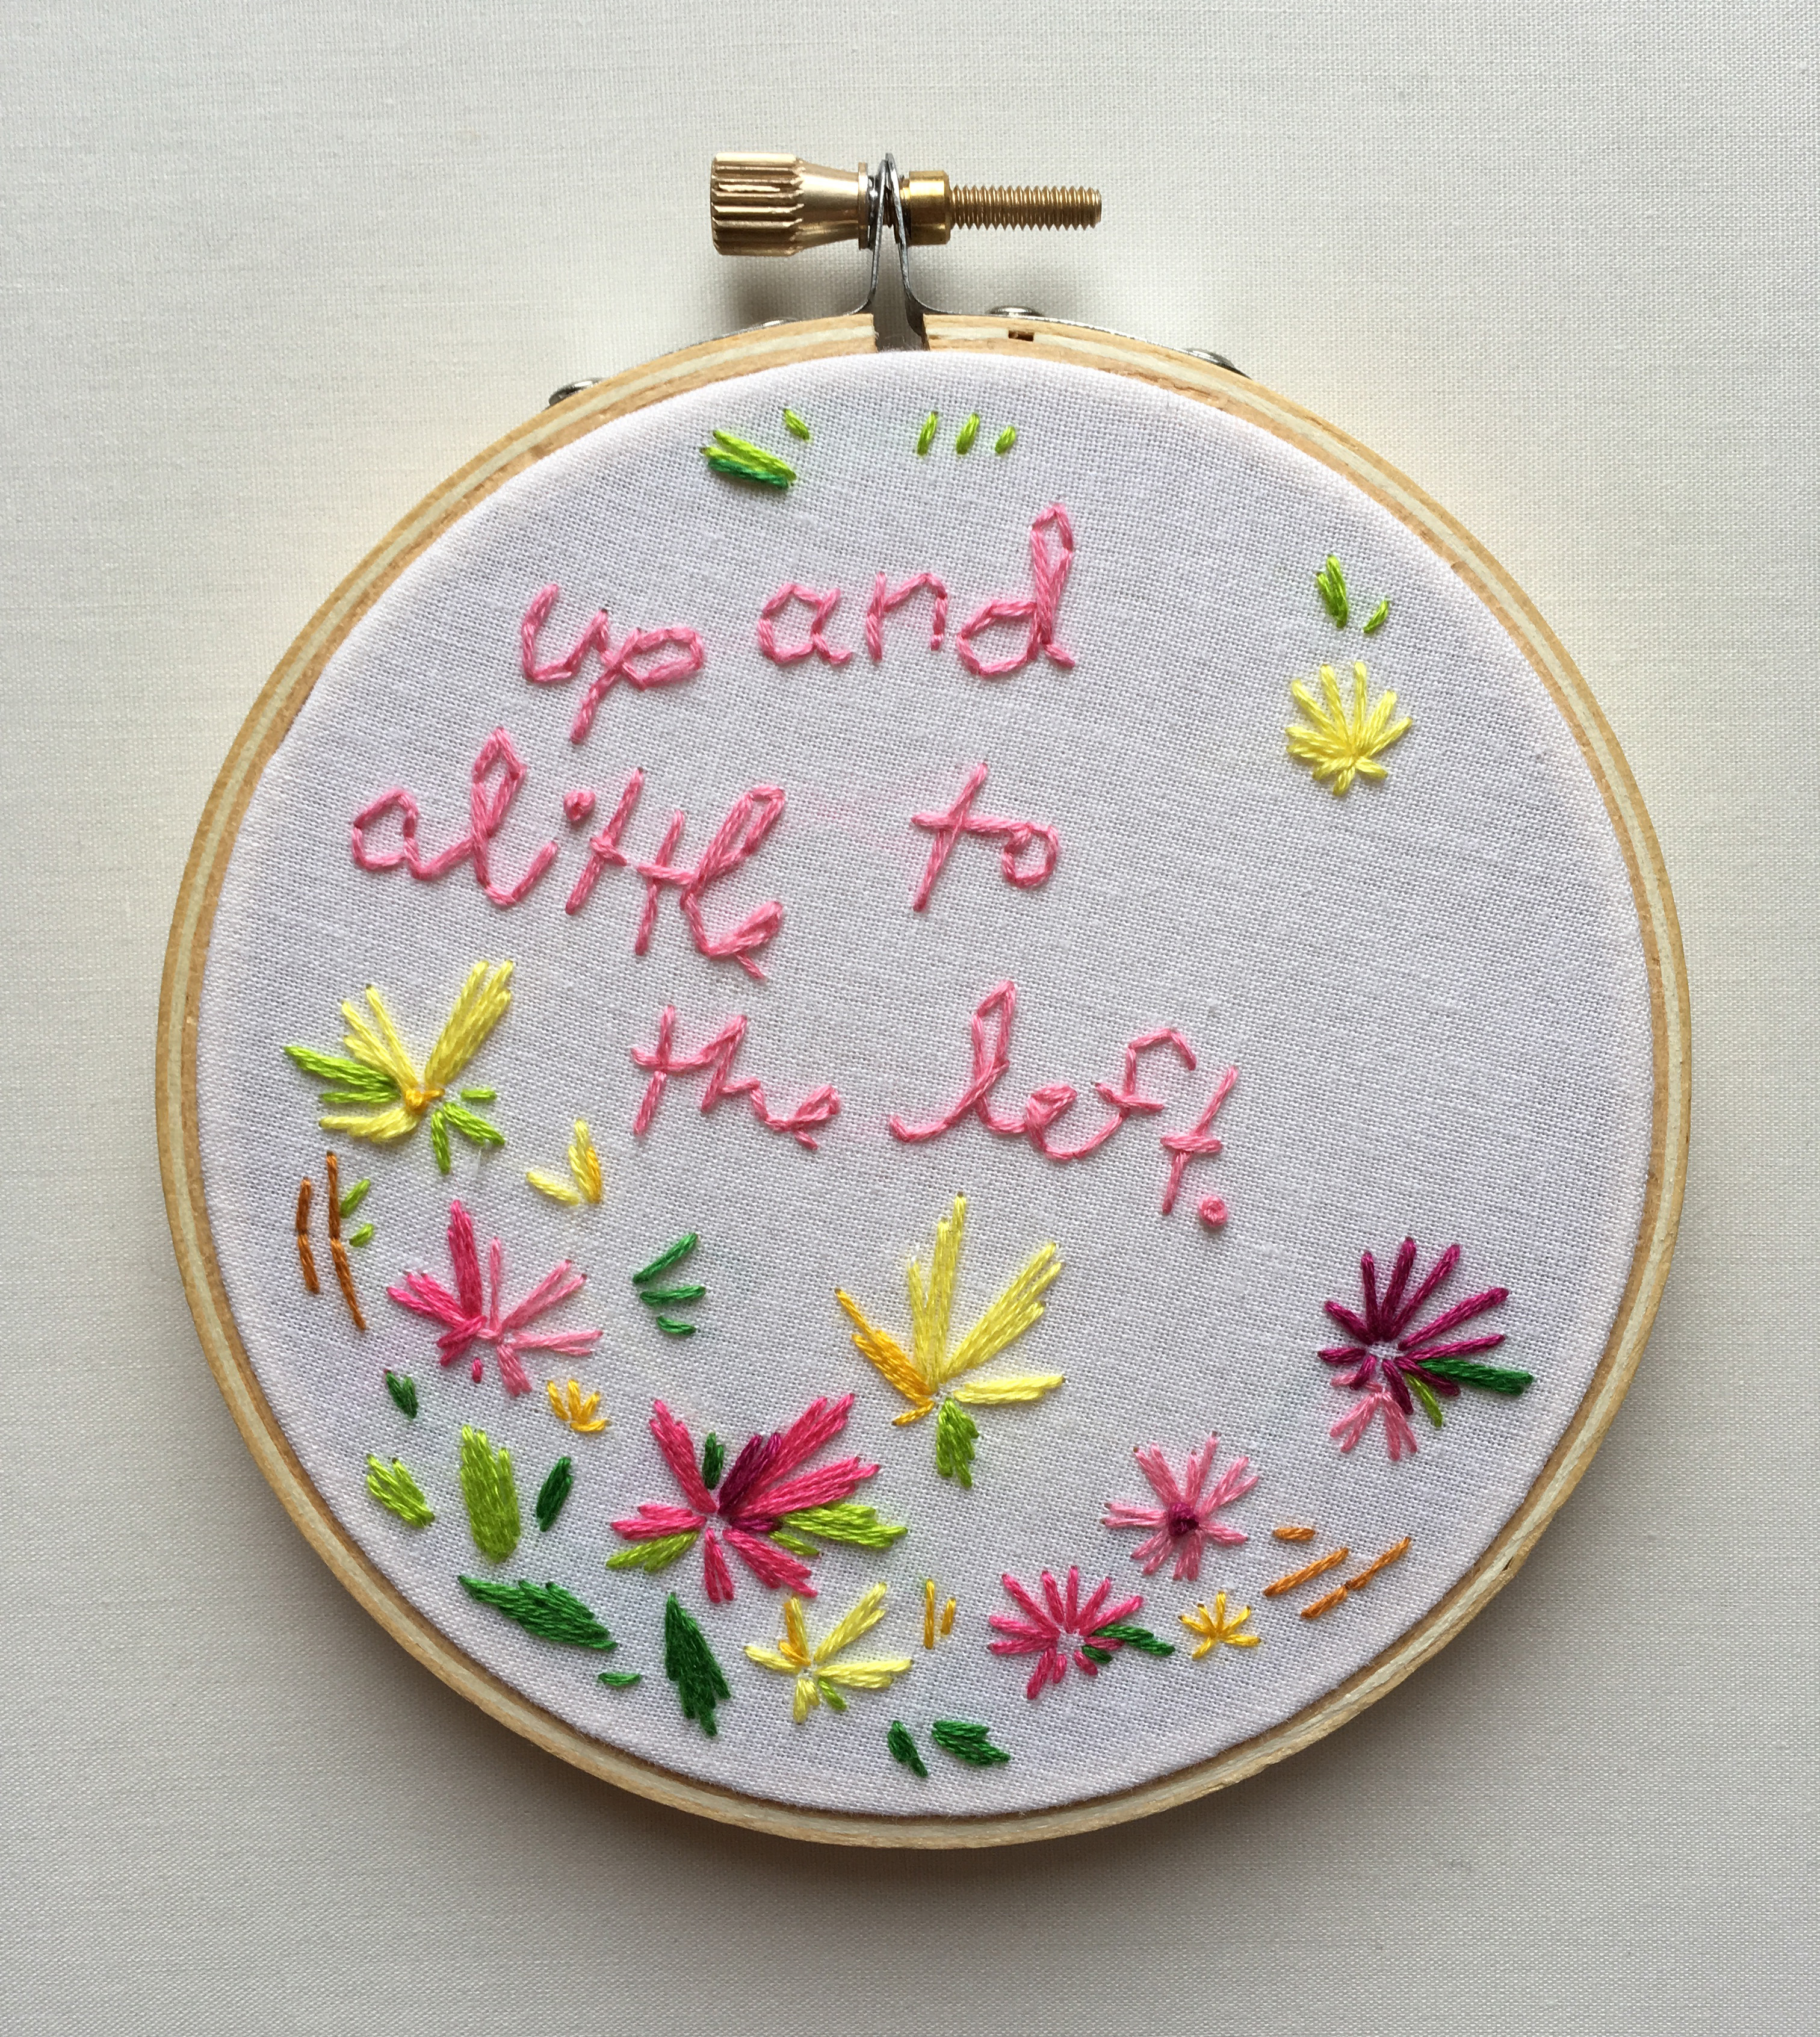 "An embroidery of the text ""up and a little to the left"" on white fabric stretched over a hoop."